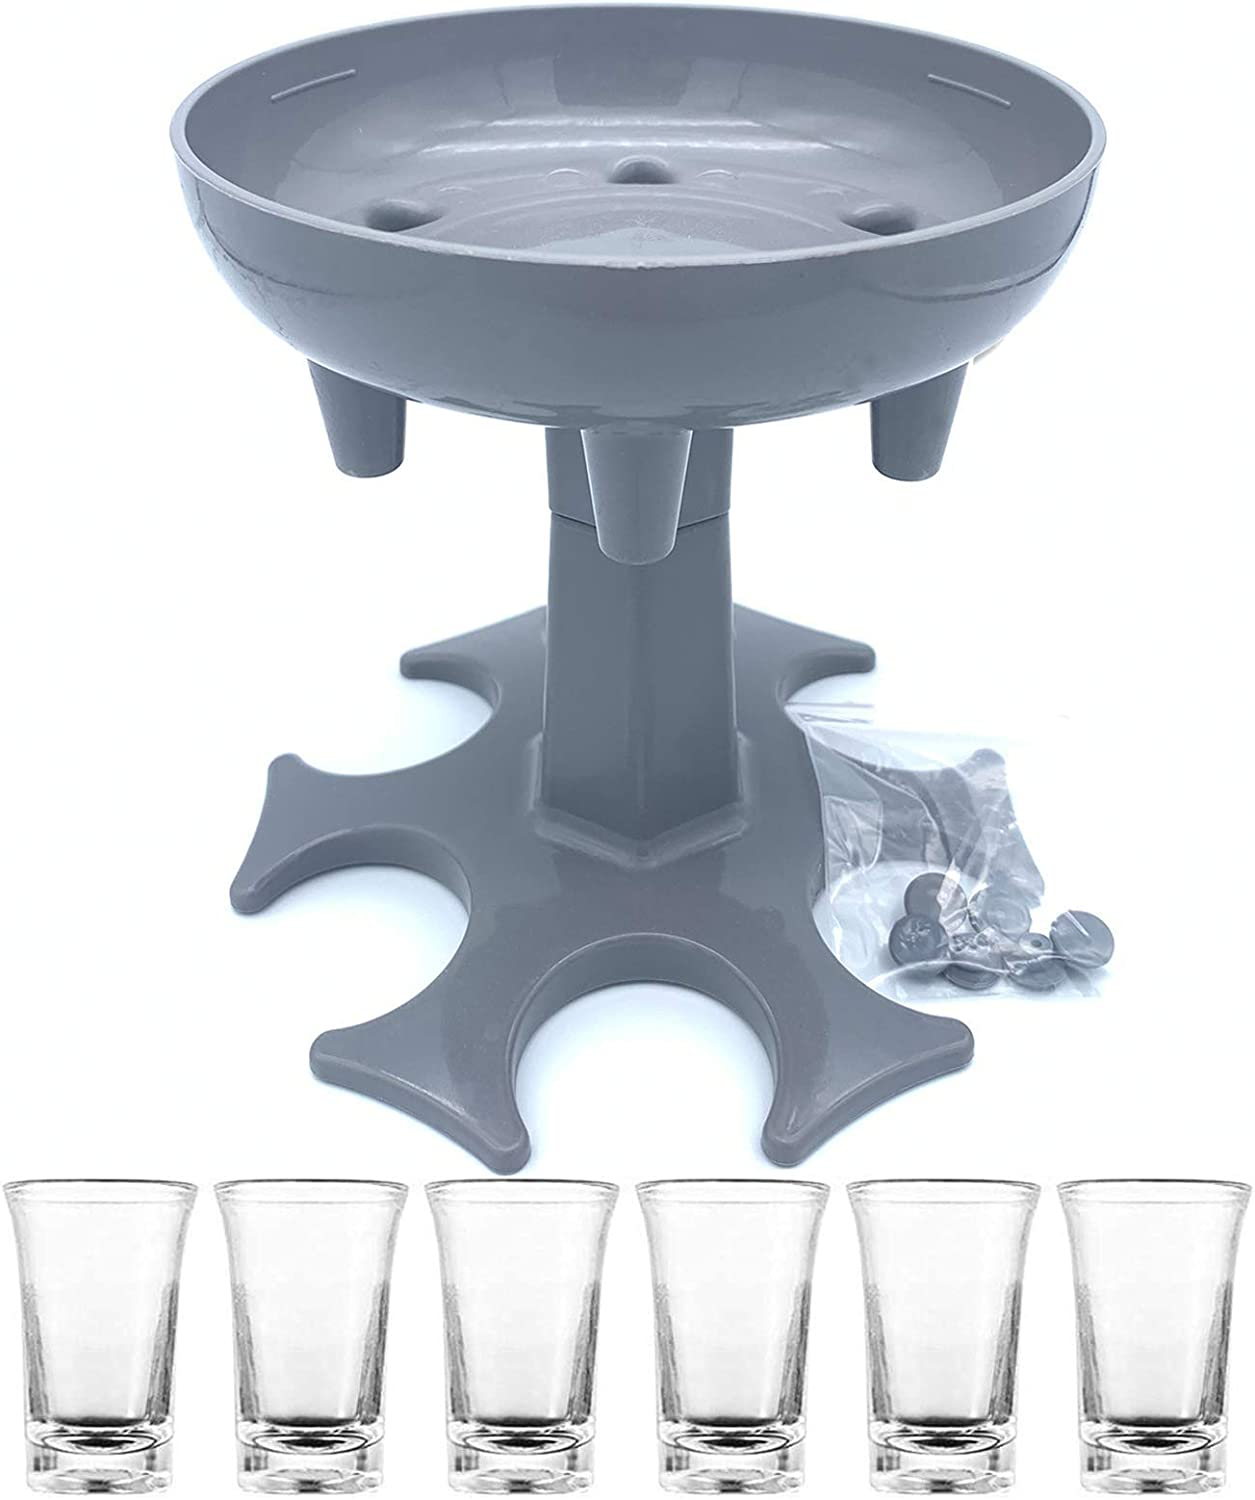 BEITESTAR 6 Shot Glass Dispenser - Multiple Shot Dispenser With 6 Acrylic Cups for Filling Liquids, Wine Dispenser, Cocktail Dispenser Drinking Games for Shot Buddy Party Gifts (Grey + 6 Cups)